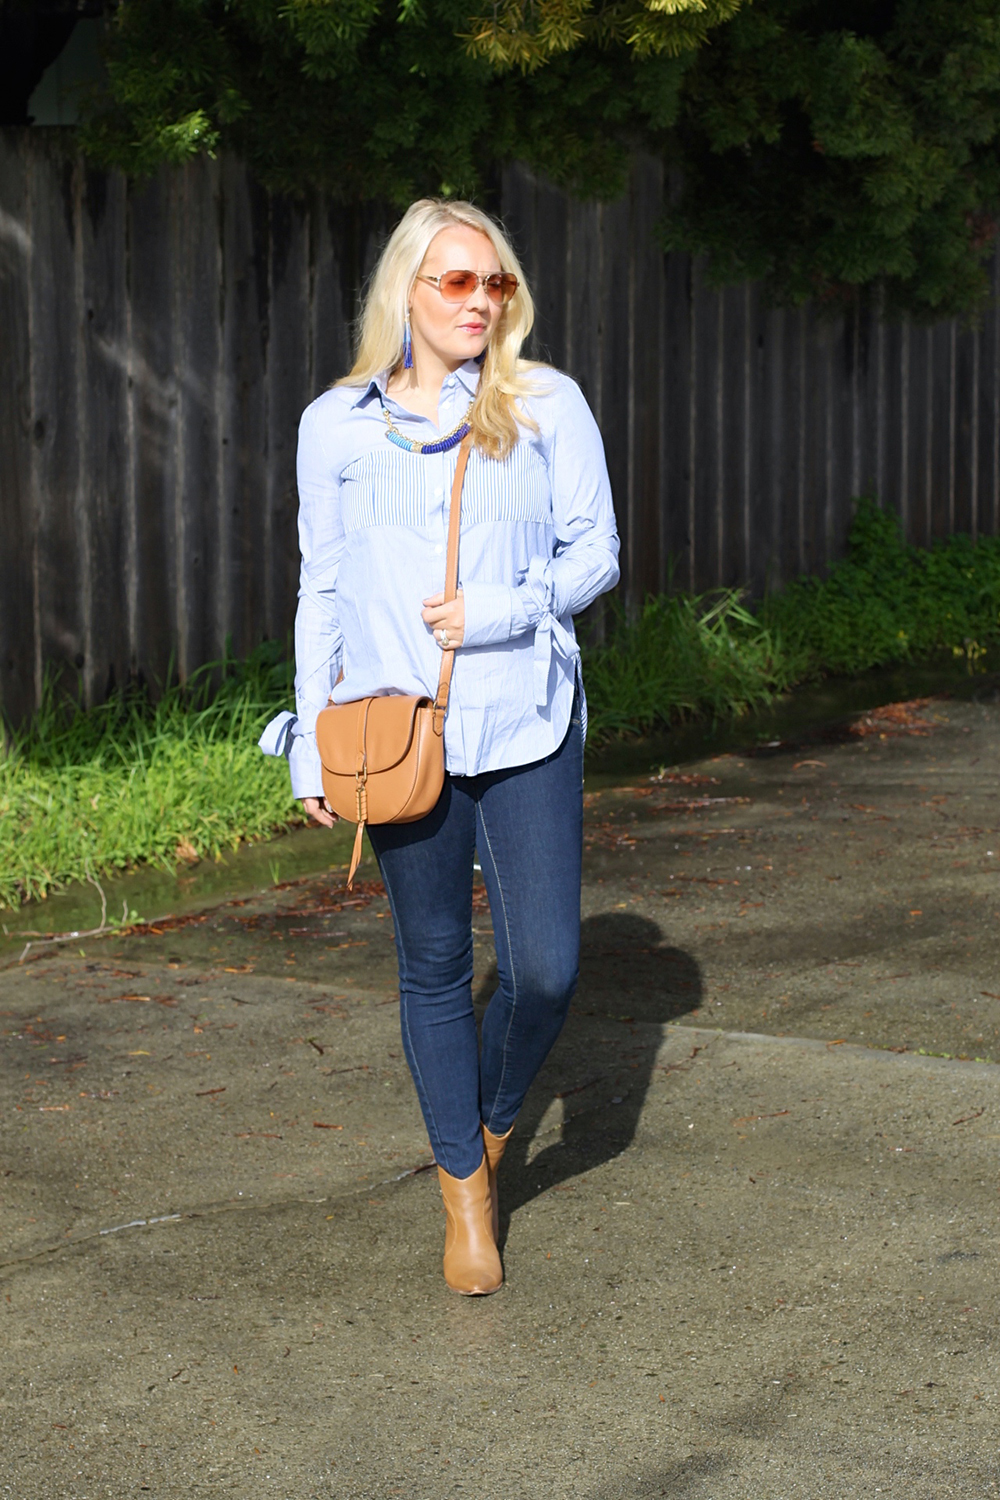 Tie Up Sleeve Blouse-Tibi Stripe Button Down-Outfit Inspiration-Have Need Want 5